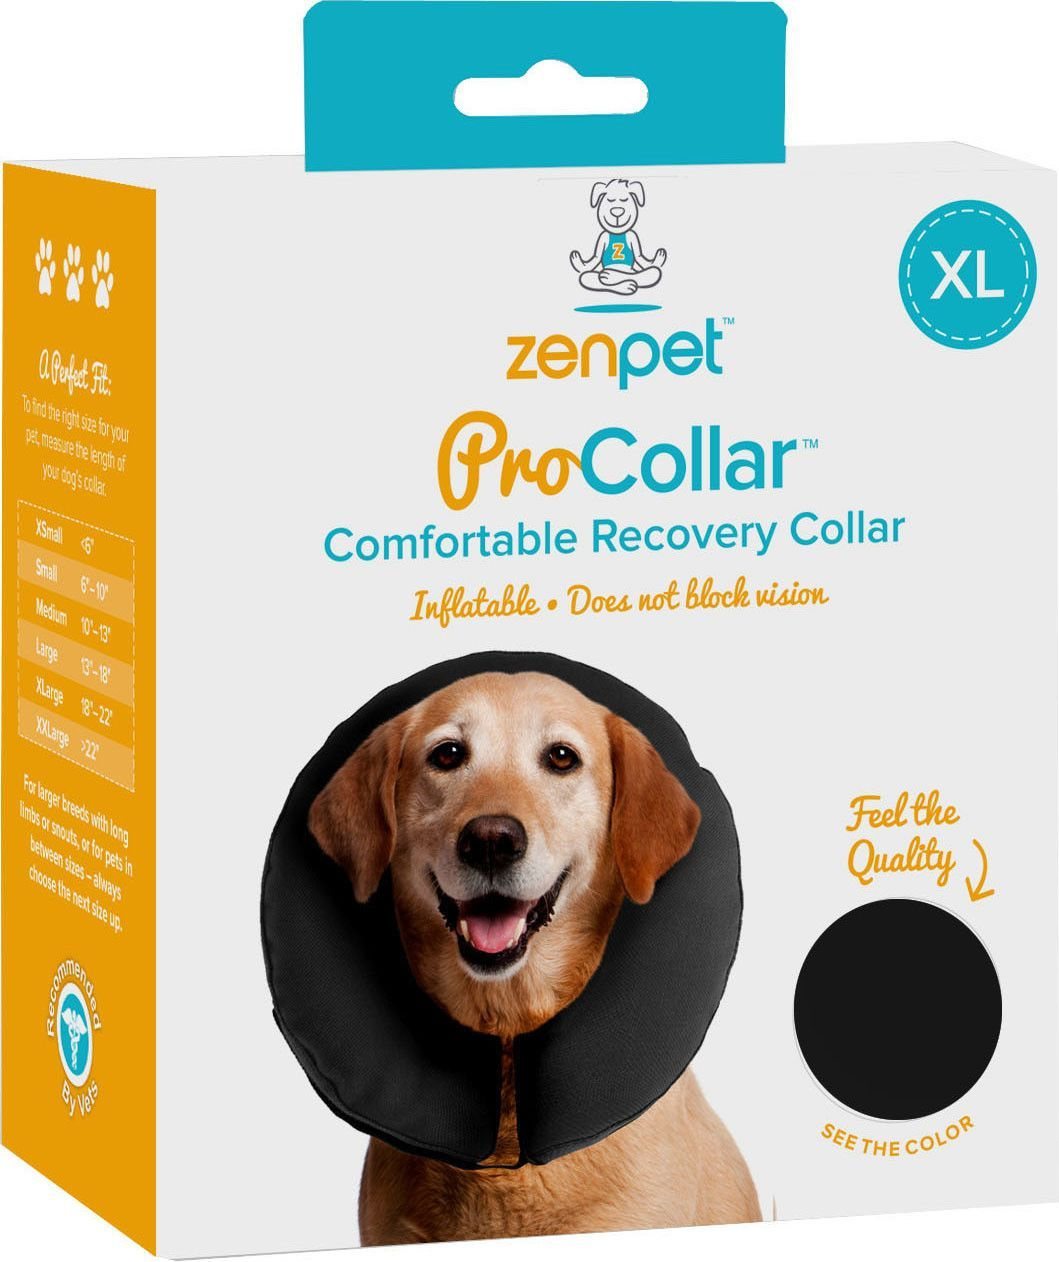 PROCOLLAR INFLATABLE RECOVERY COLLAR Cat collars, Dogs